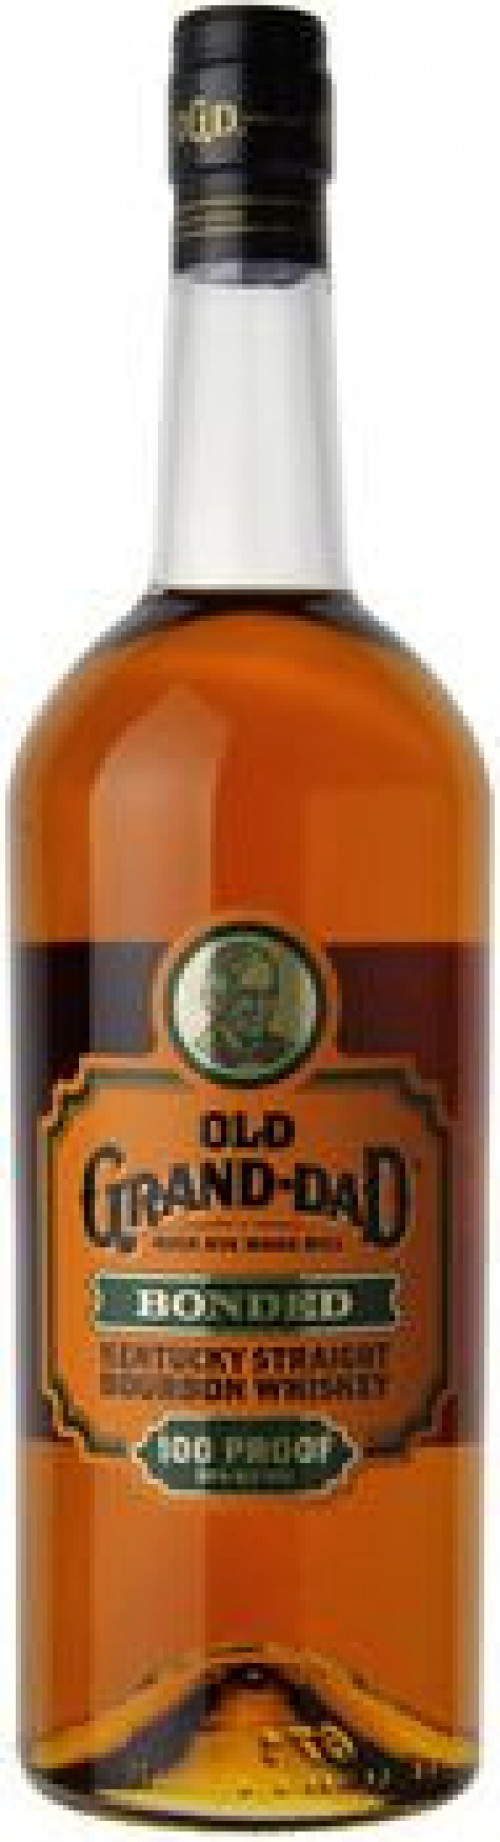 Old Grand Dad Bottled In Bond Kentucky Straight Bourbon 750ml